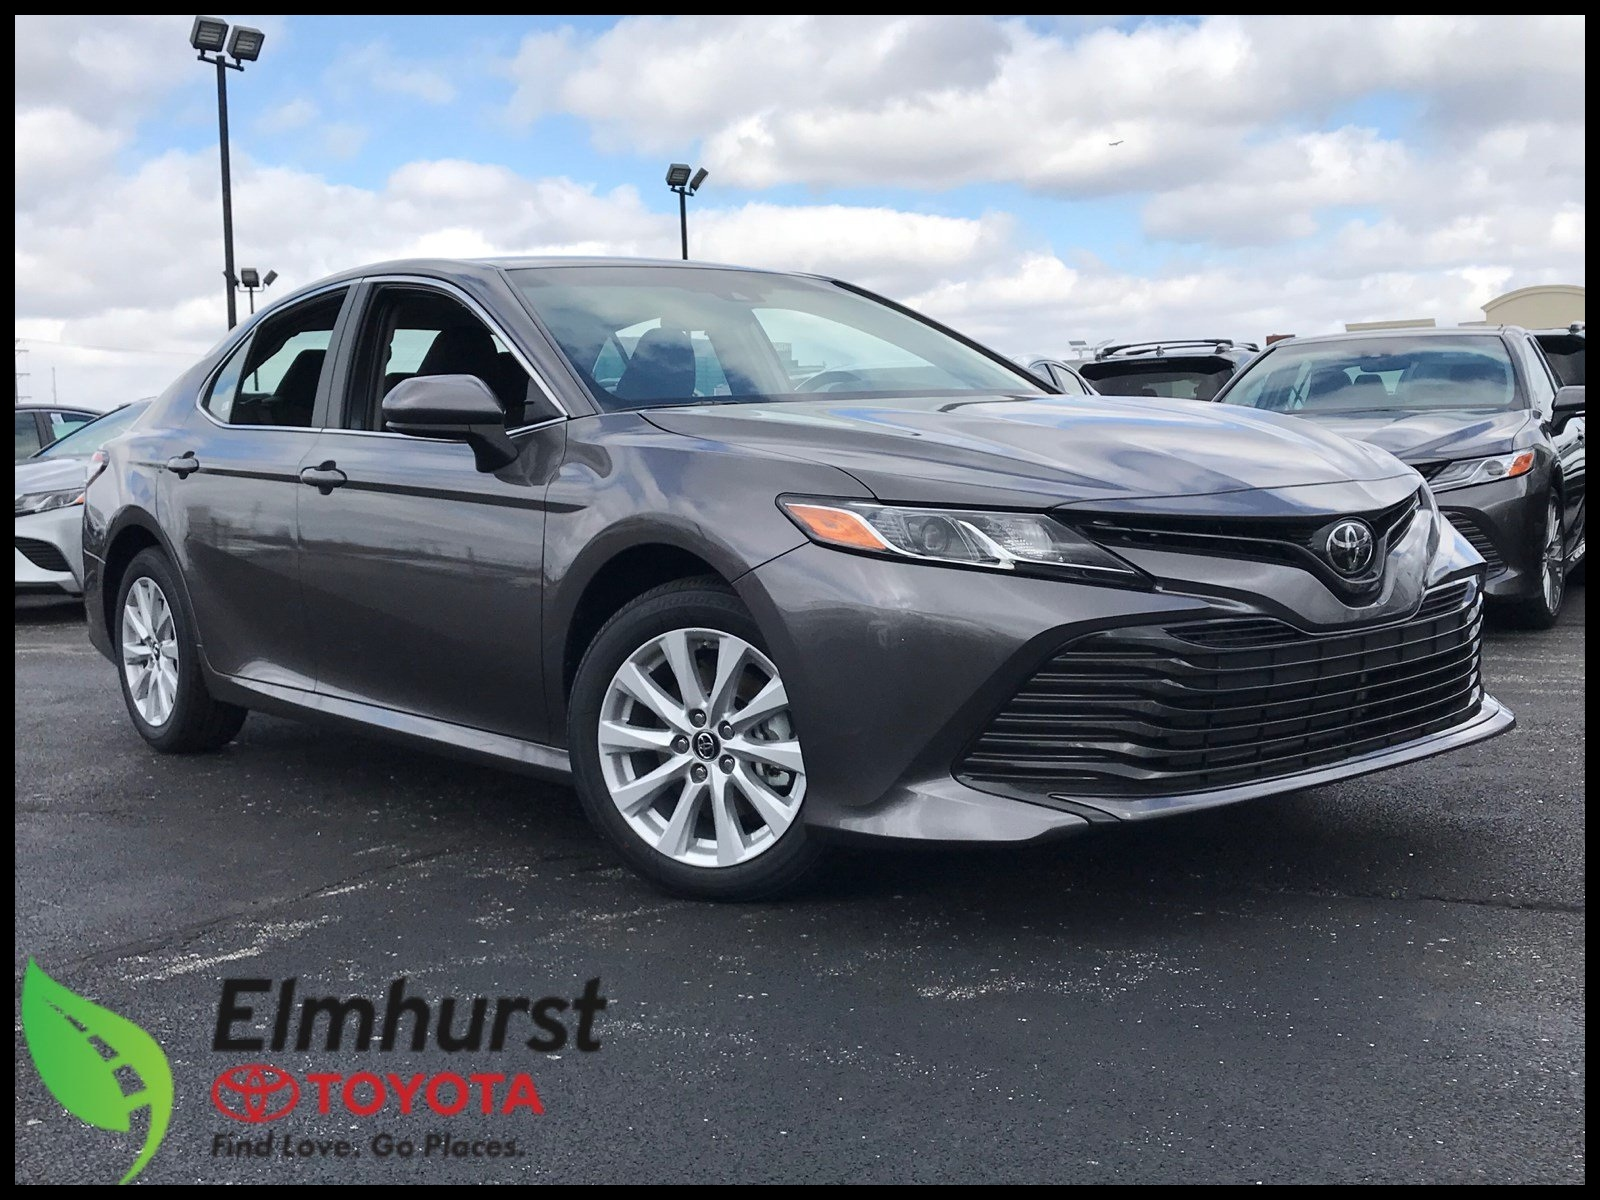 2009 toyota Camry Hybrid Review Special New 2018 toyota Camry Le 4dr Car In Elmhurst T